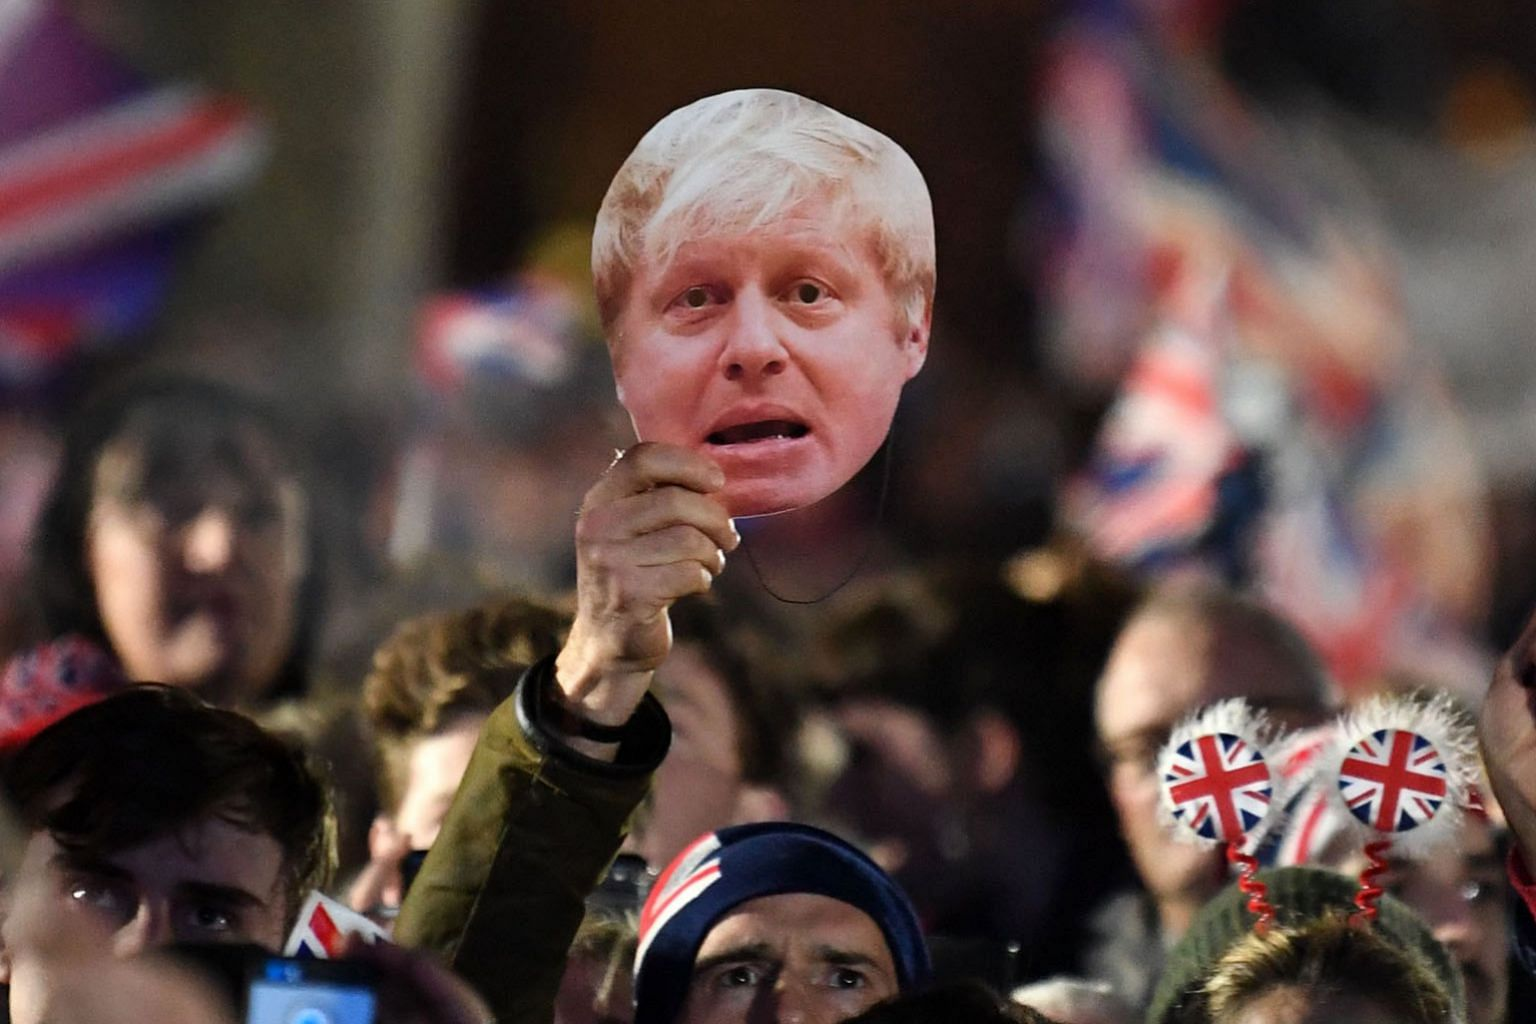 Brexit supporters in London waving Union flags and a mask of British Prime Minister Boris Johnson as the clock ticked down to Britain's departure from the European Union at 11pm last Friday.